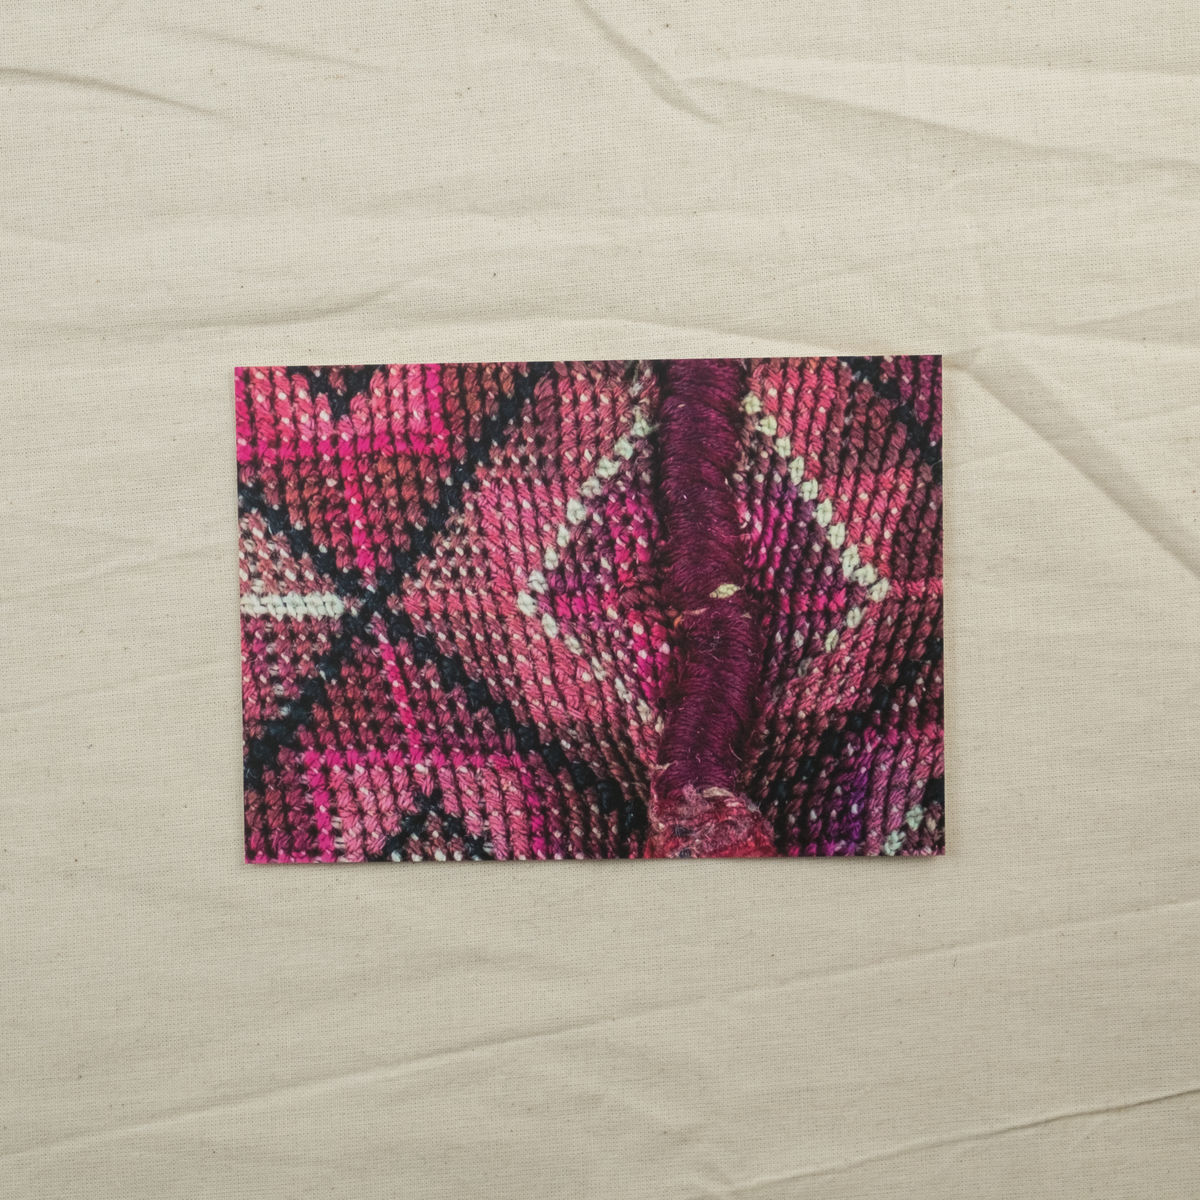 Burqa detail - 2 - Palestinian embroidery postcard - product images  of